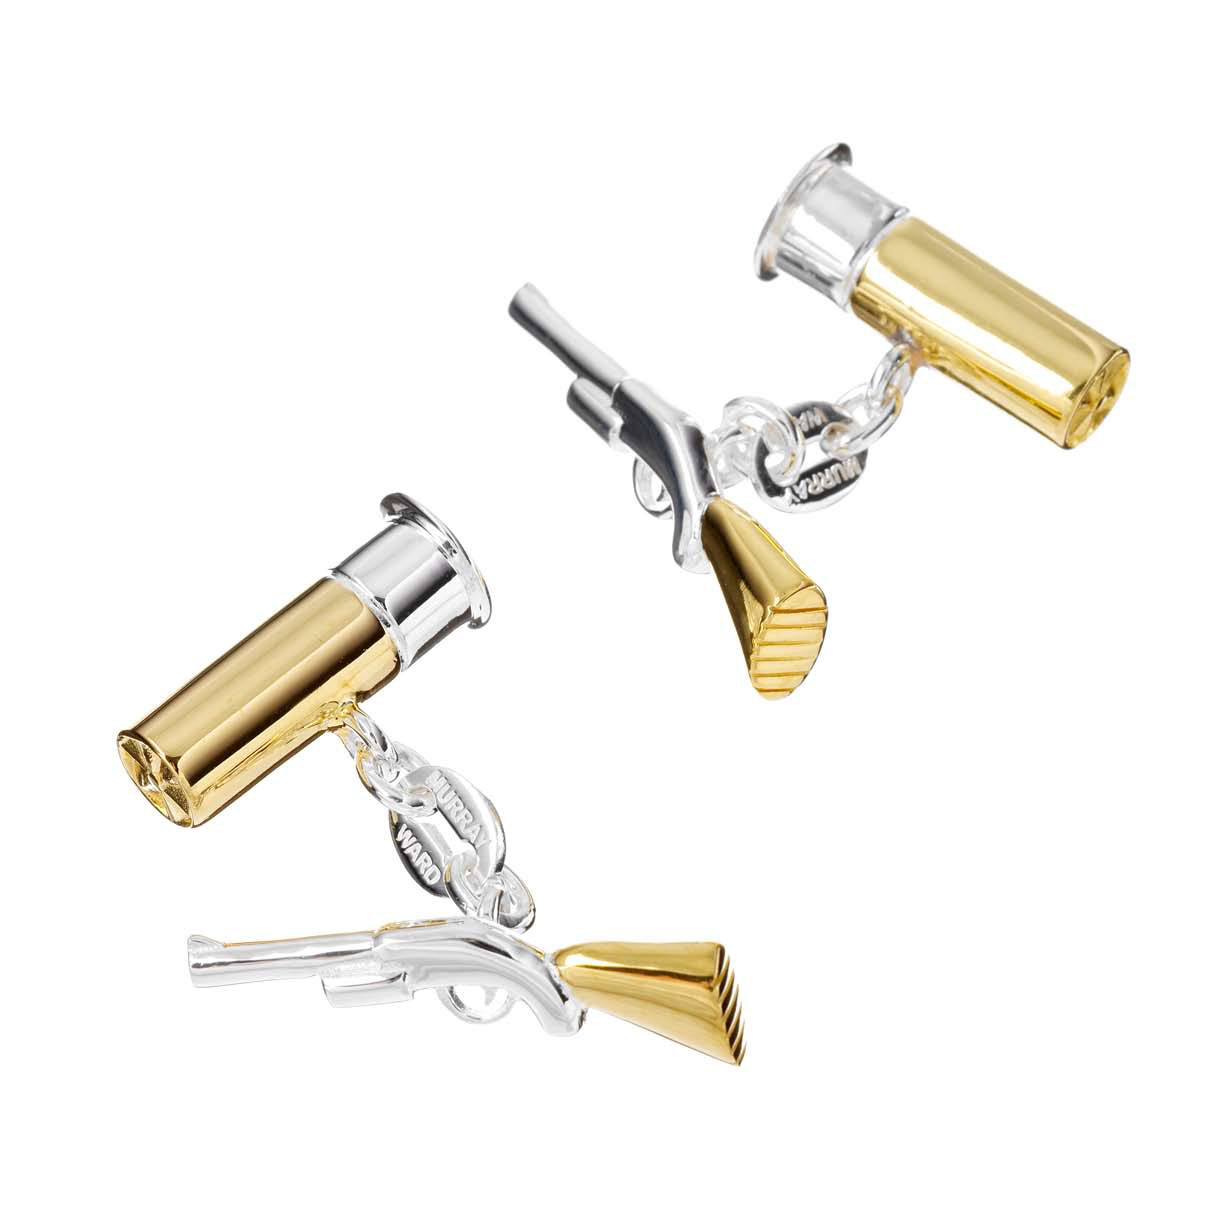 Shotgun and Gun Cartridge Cufflinks in Gunmetal and Gilt